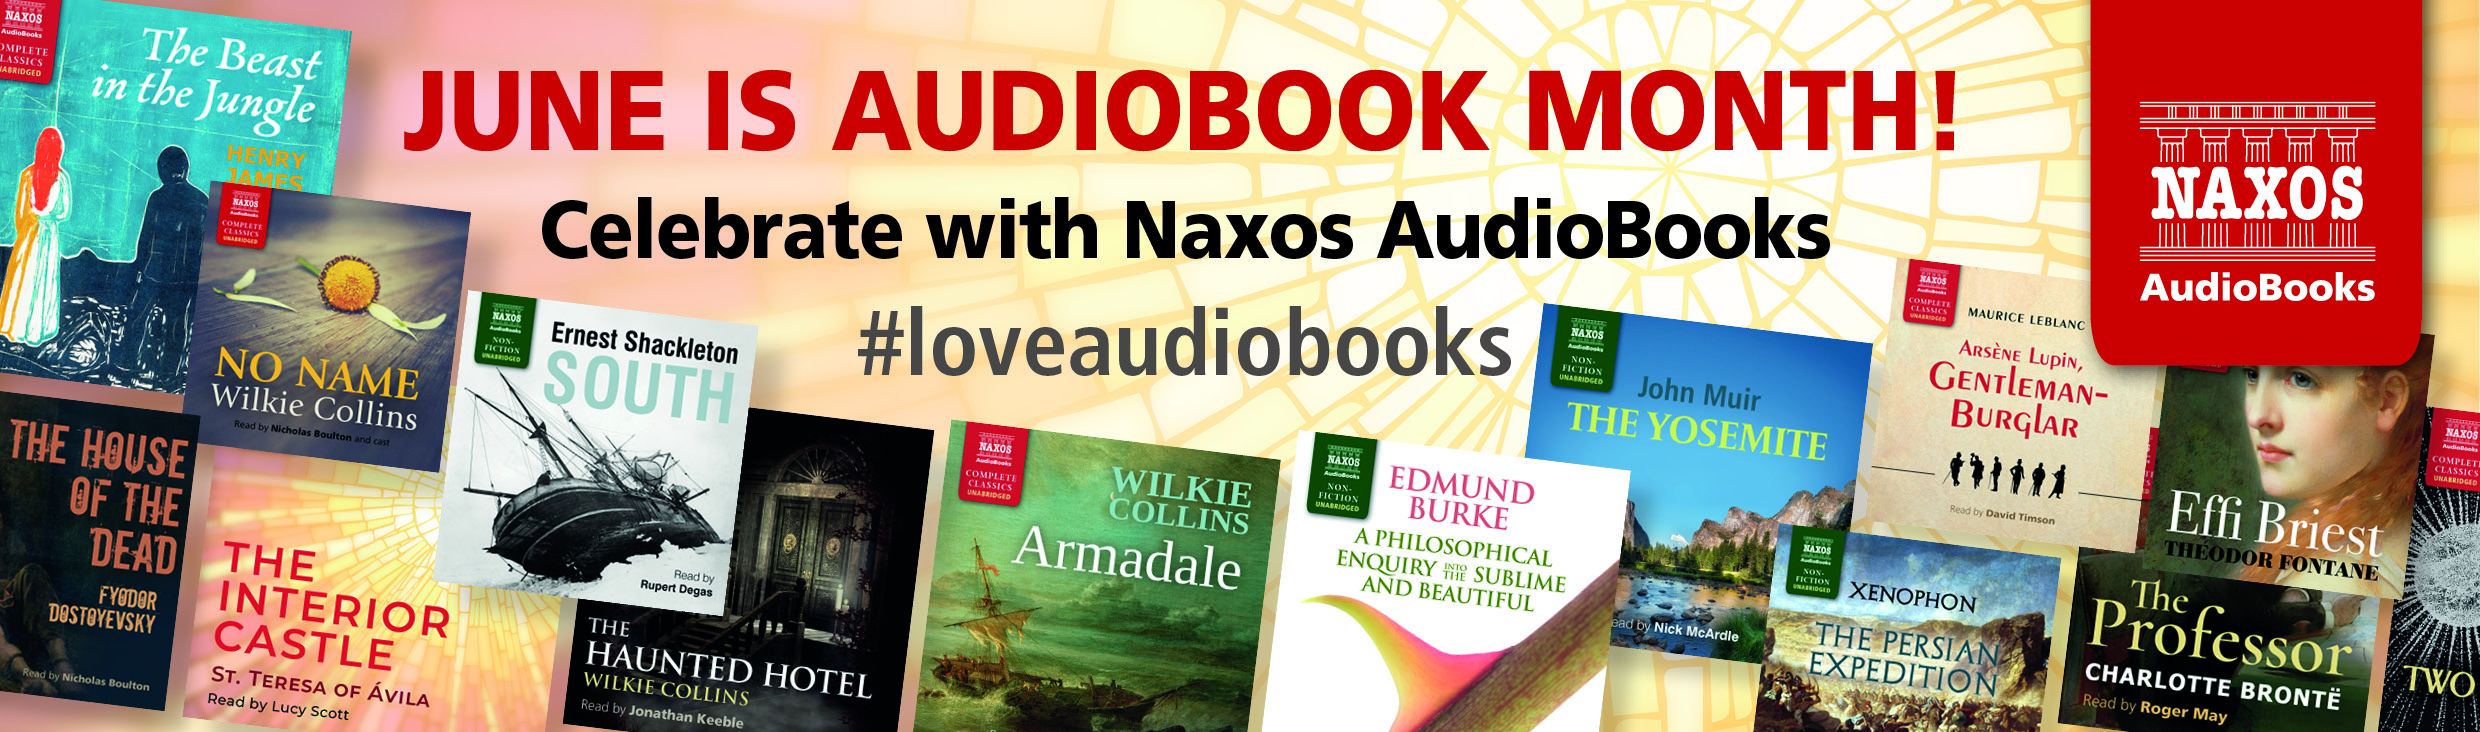 Audiobook month banner